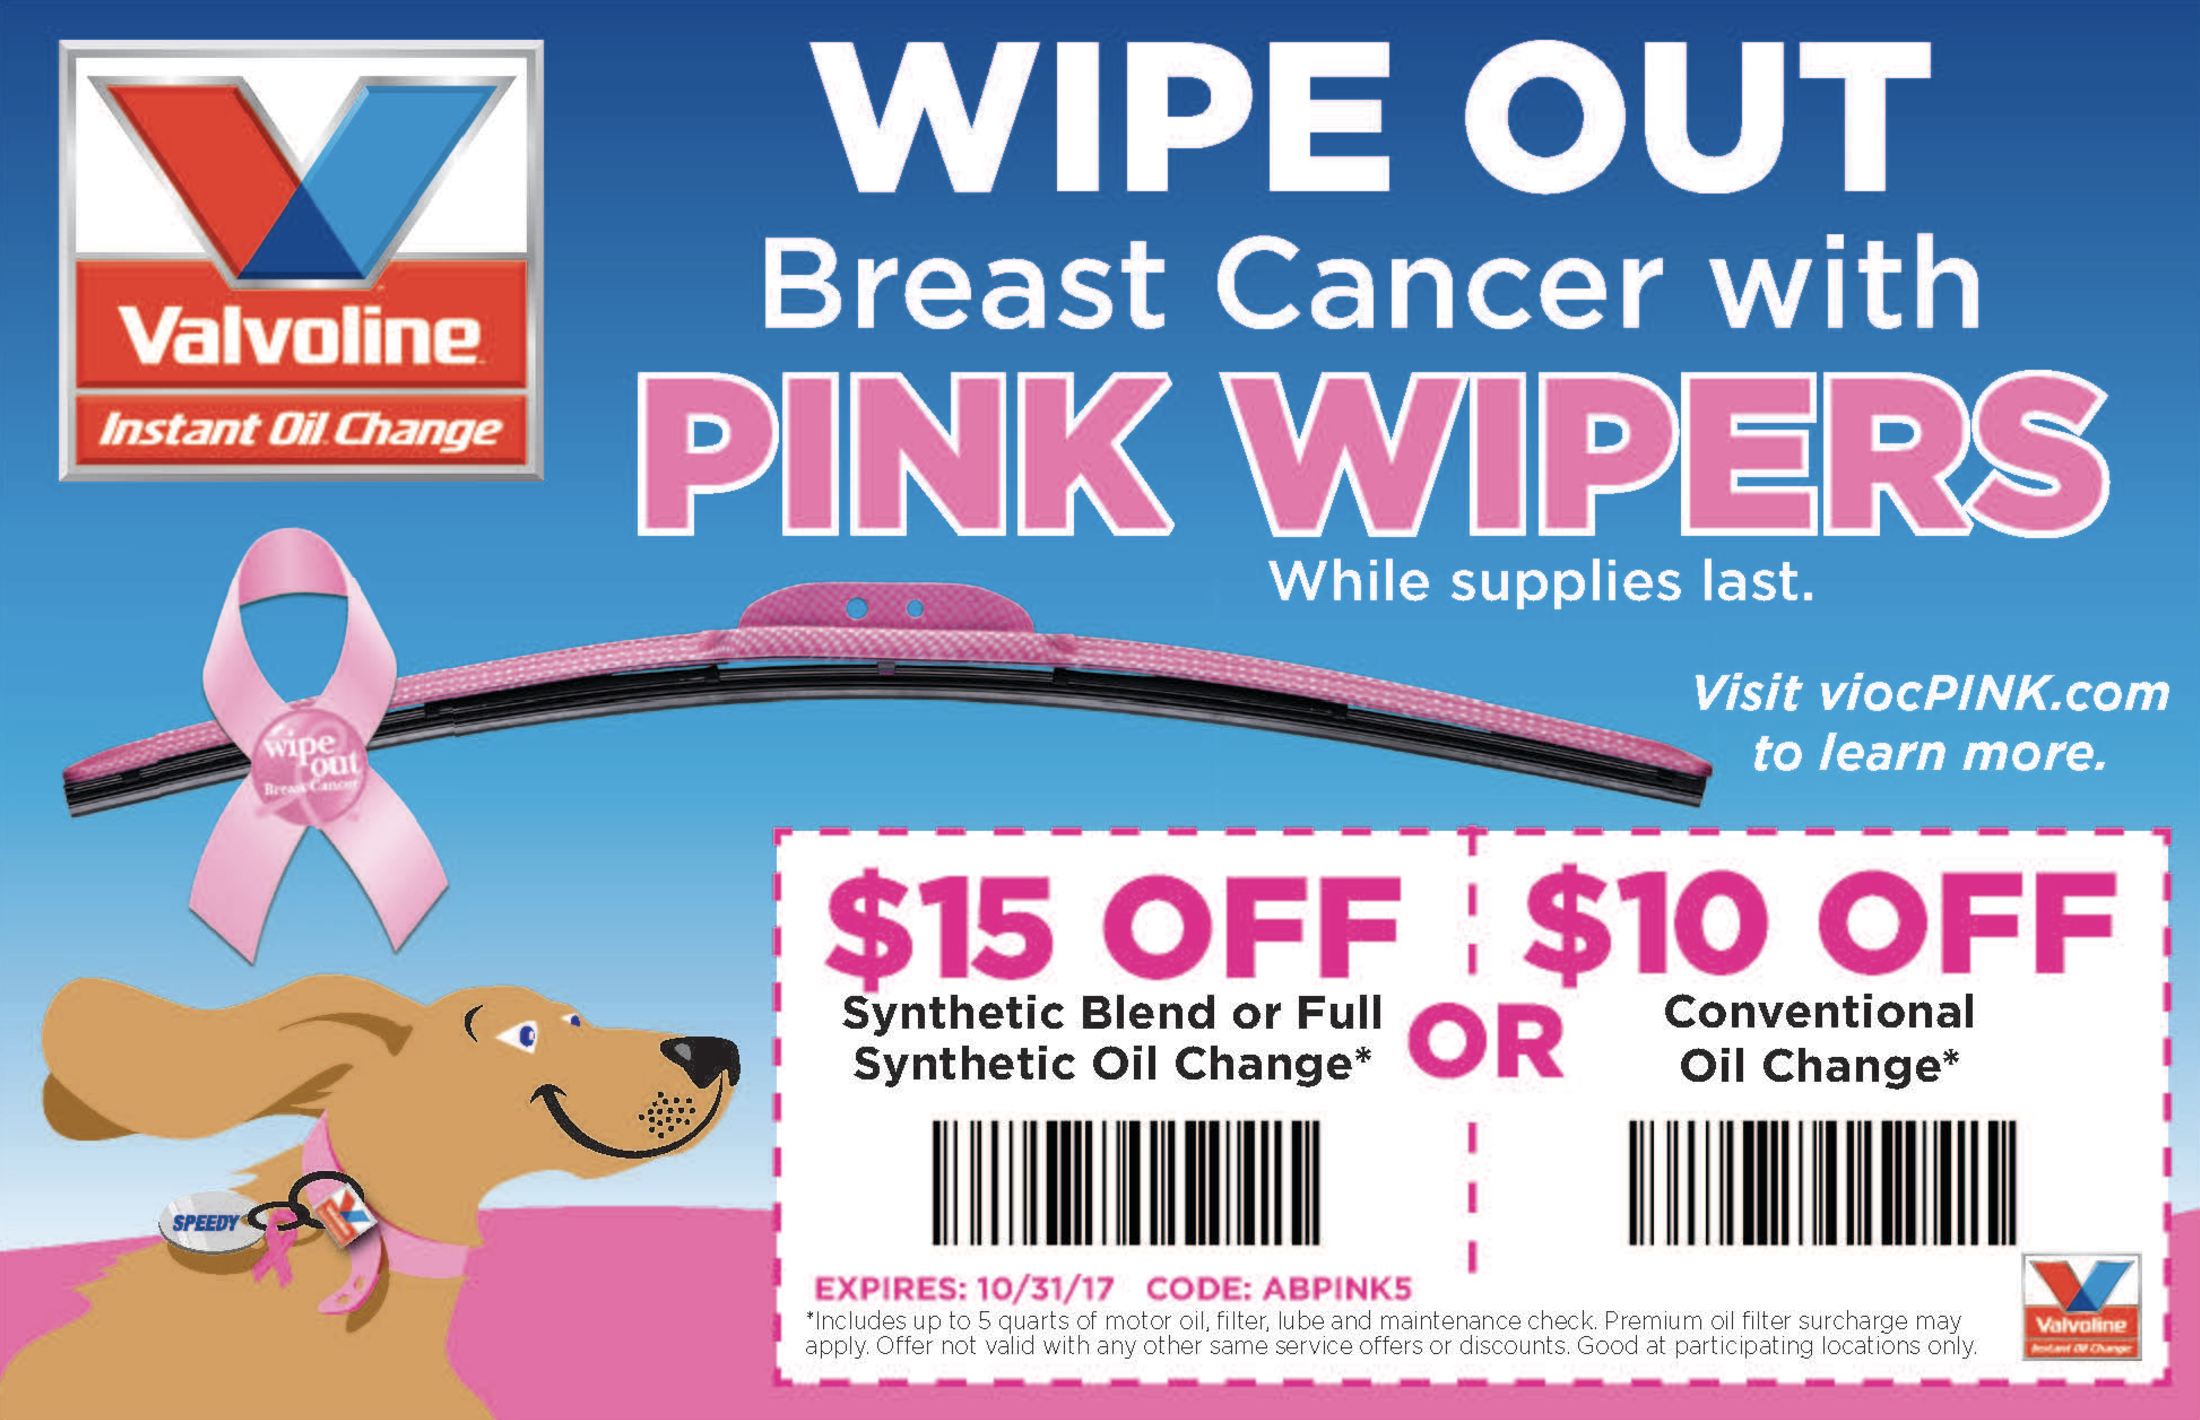 If you purchase the AutoTex PINK wipers on Saturday, September 30th, VIOC will double their donation to the National Breast Cancer Foundation!